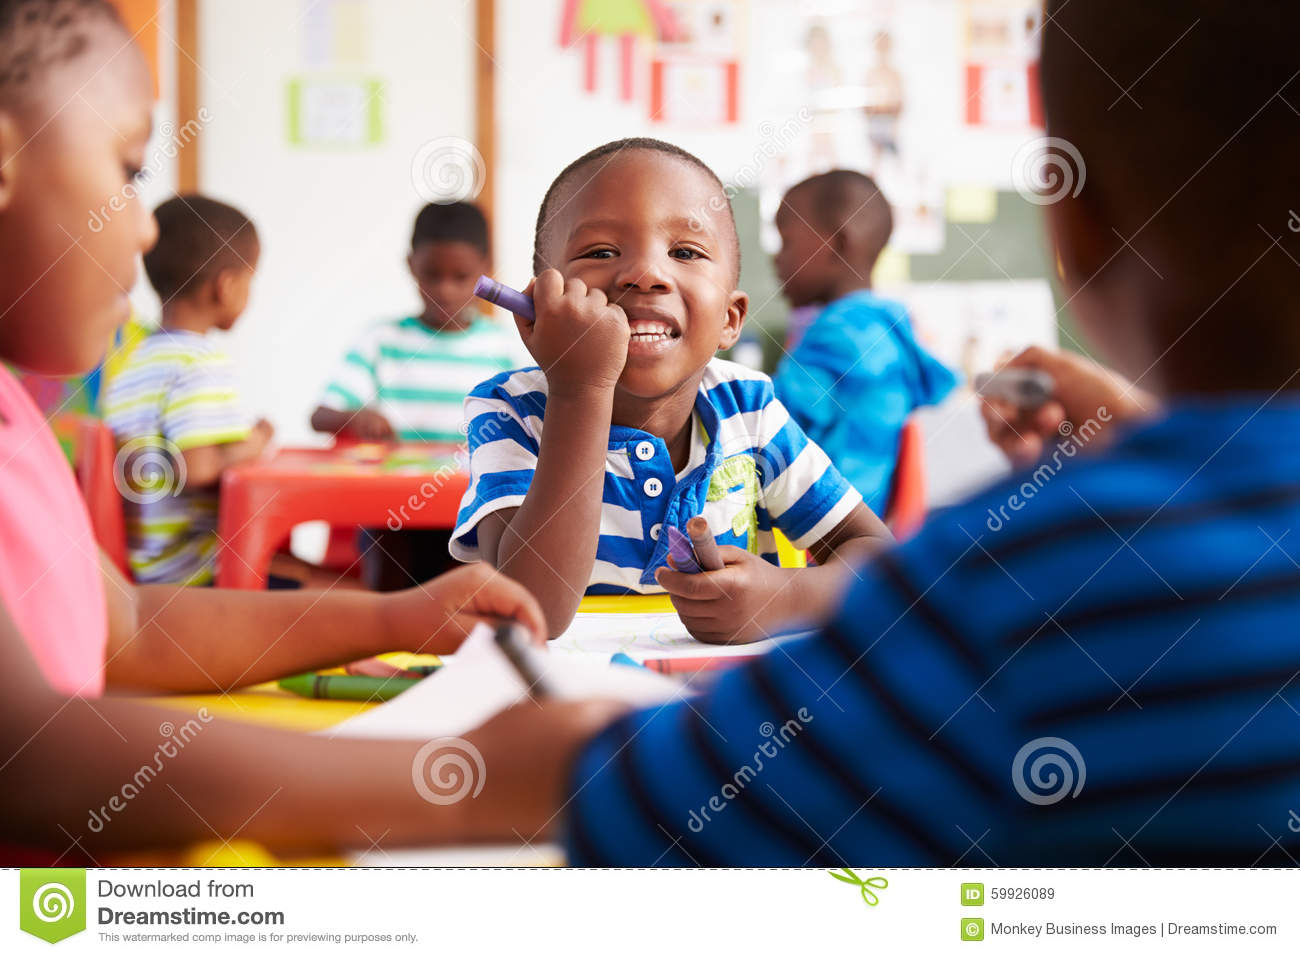 Preschool class in South Africa, boy looking to camera